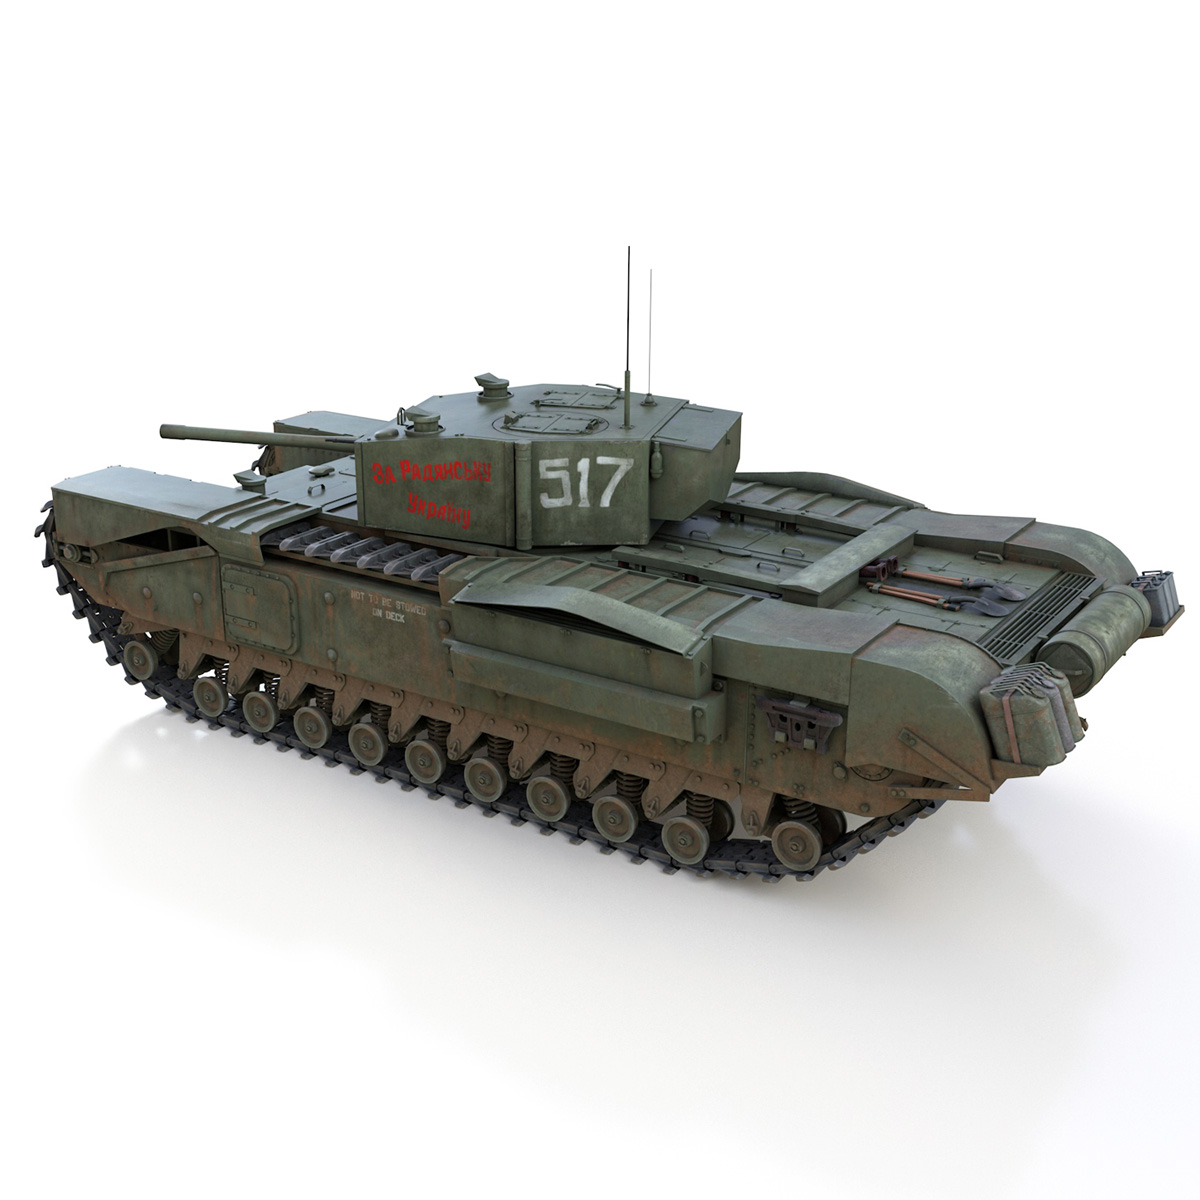 churchill mk iii – 517 – soviet army 3d model 3ds fbx c4d lwo obj 272977